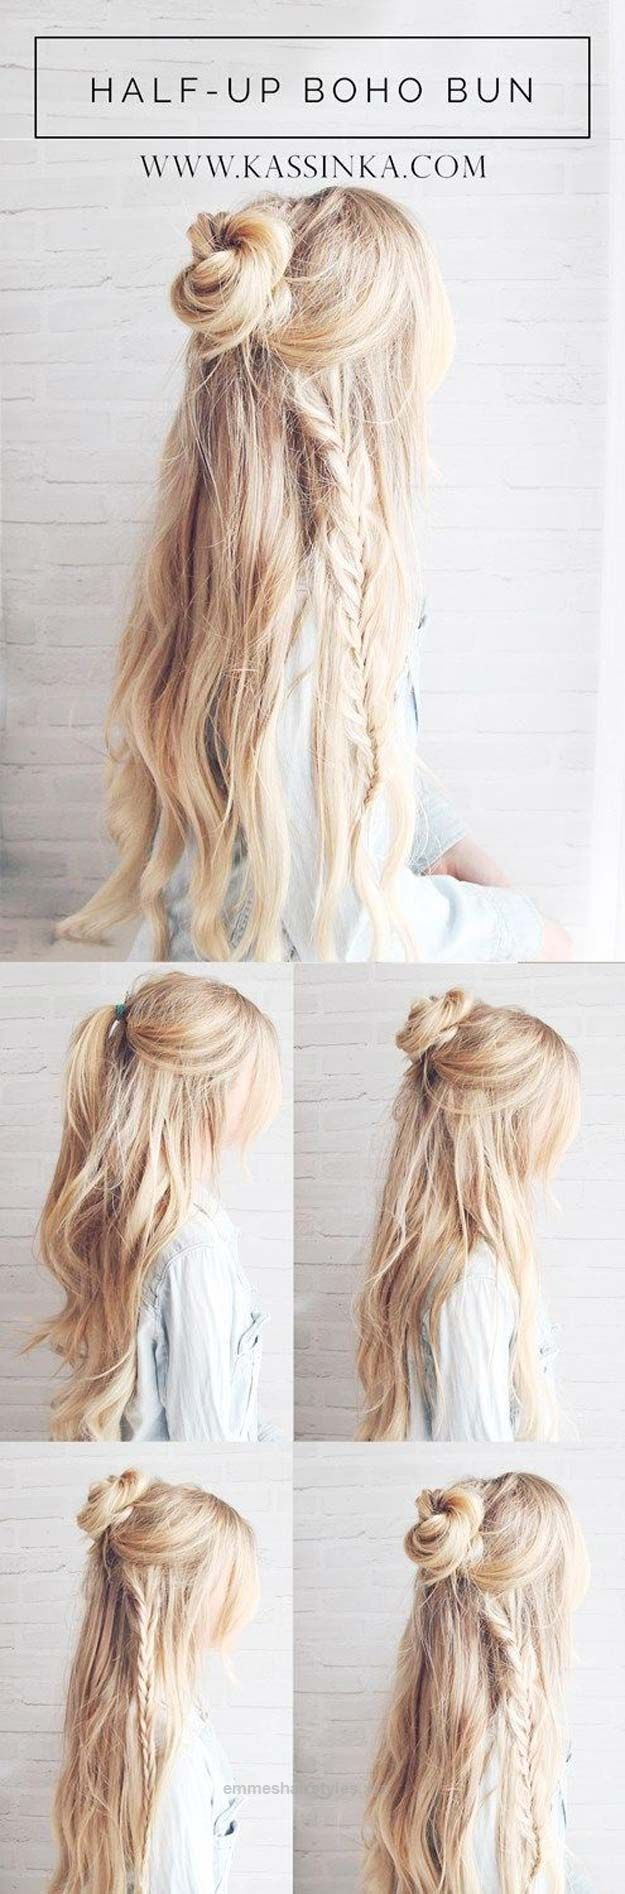 Wonderful Best Hairstyles for Long Hair – Boho Braided Bun Hair – Step by Step Tutorials for Easy Curls, Updo, Half Up, Braids and Lazy Girl Looks. Prom Ideas, Special Occasion Hair and Braiding I ..